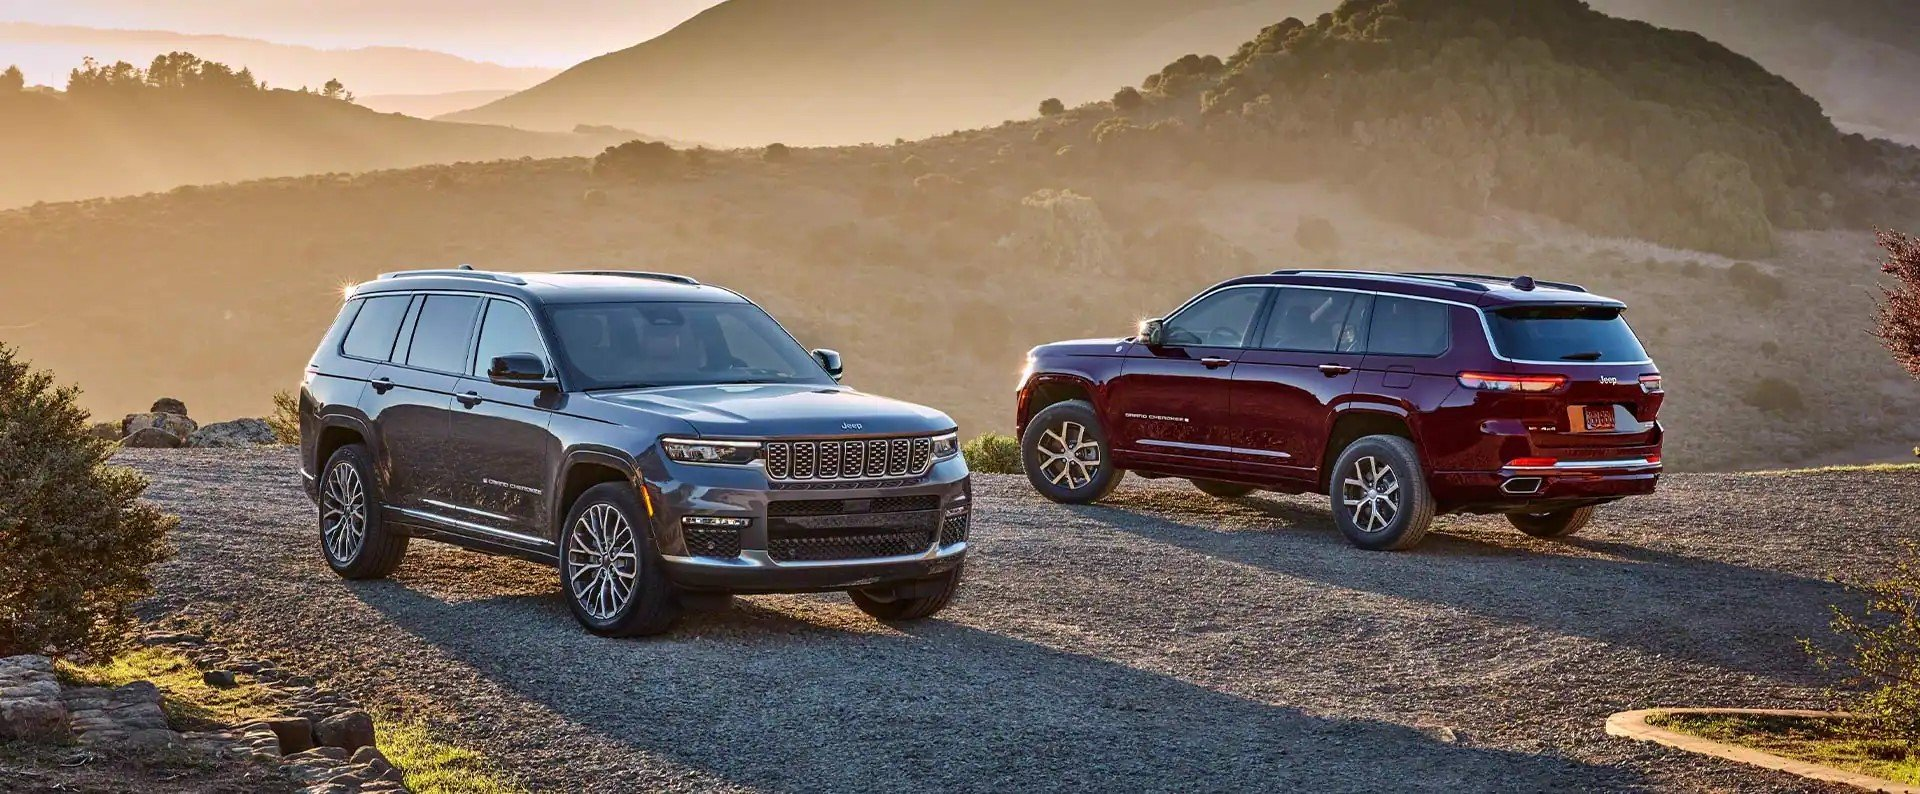 All-New Jeep Grand Cherokee L with 3rd row seating